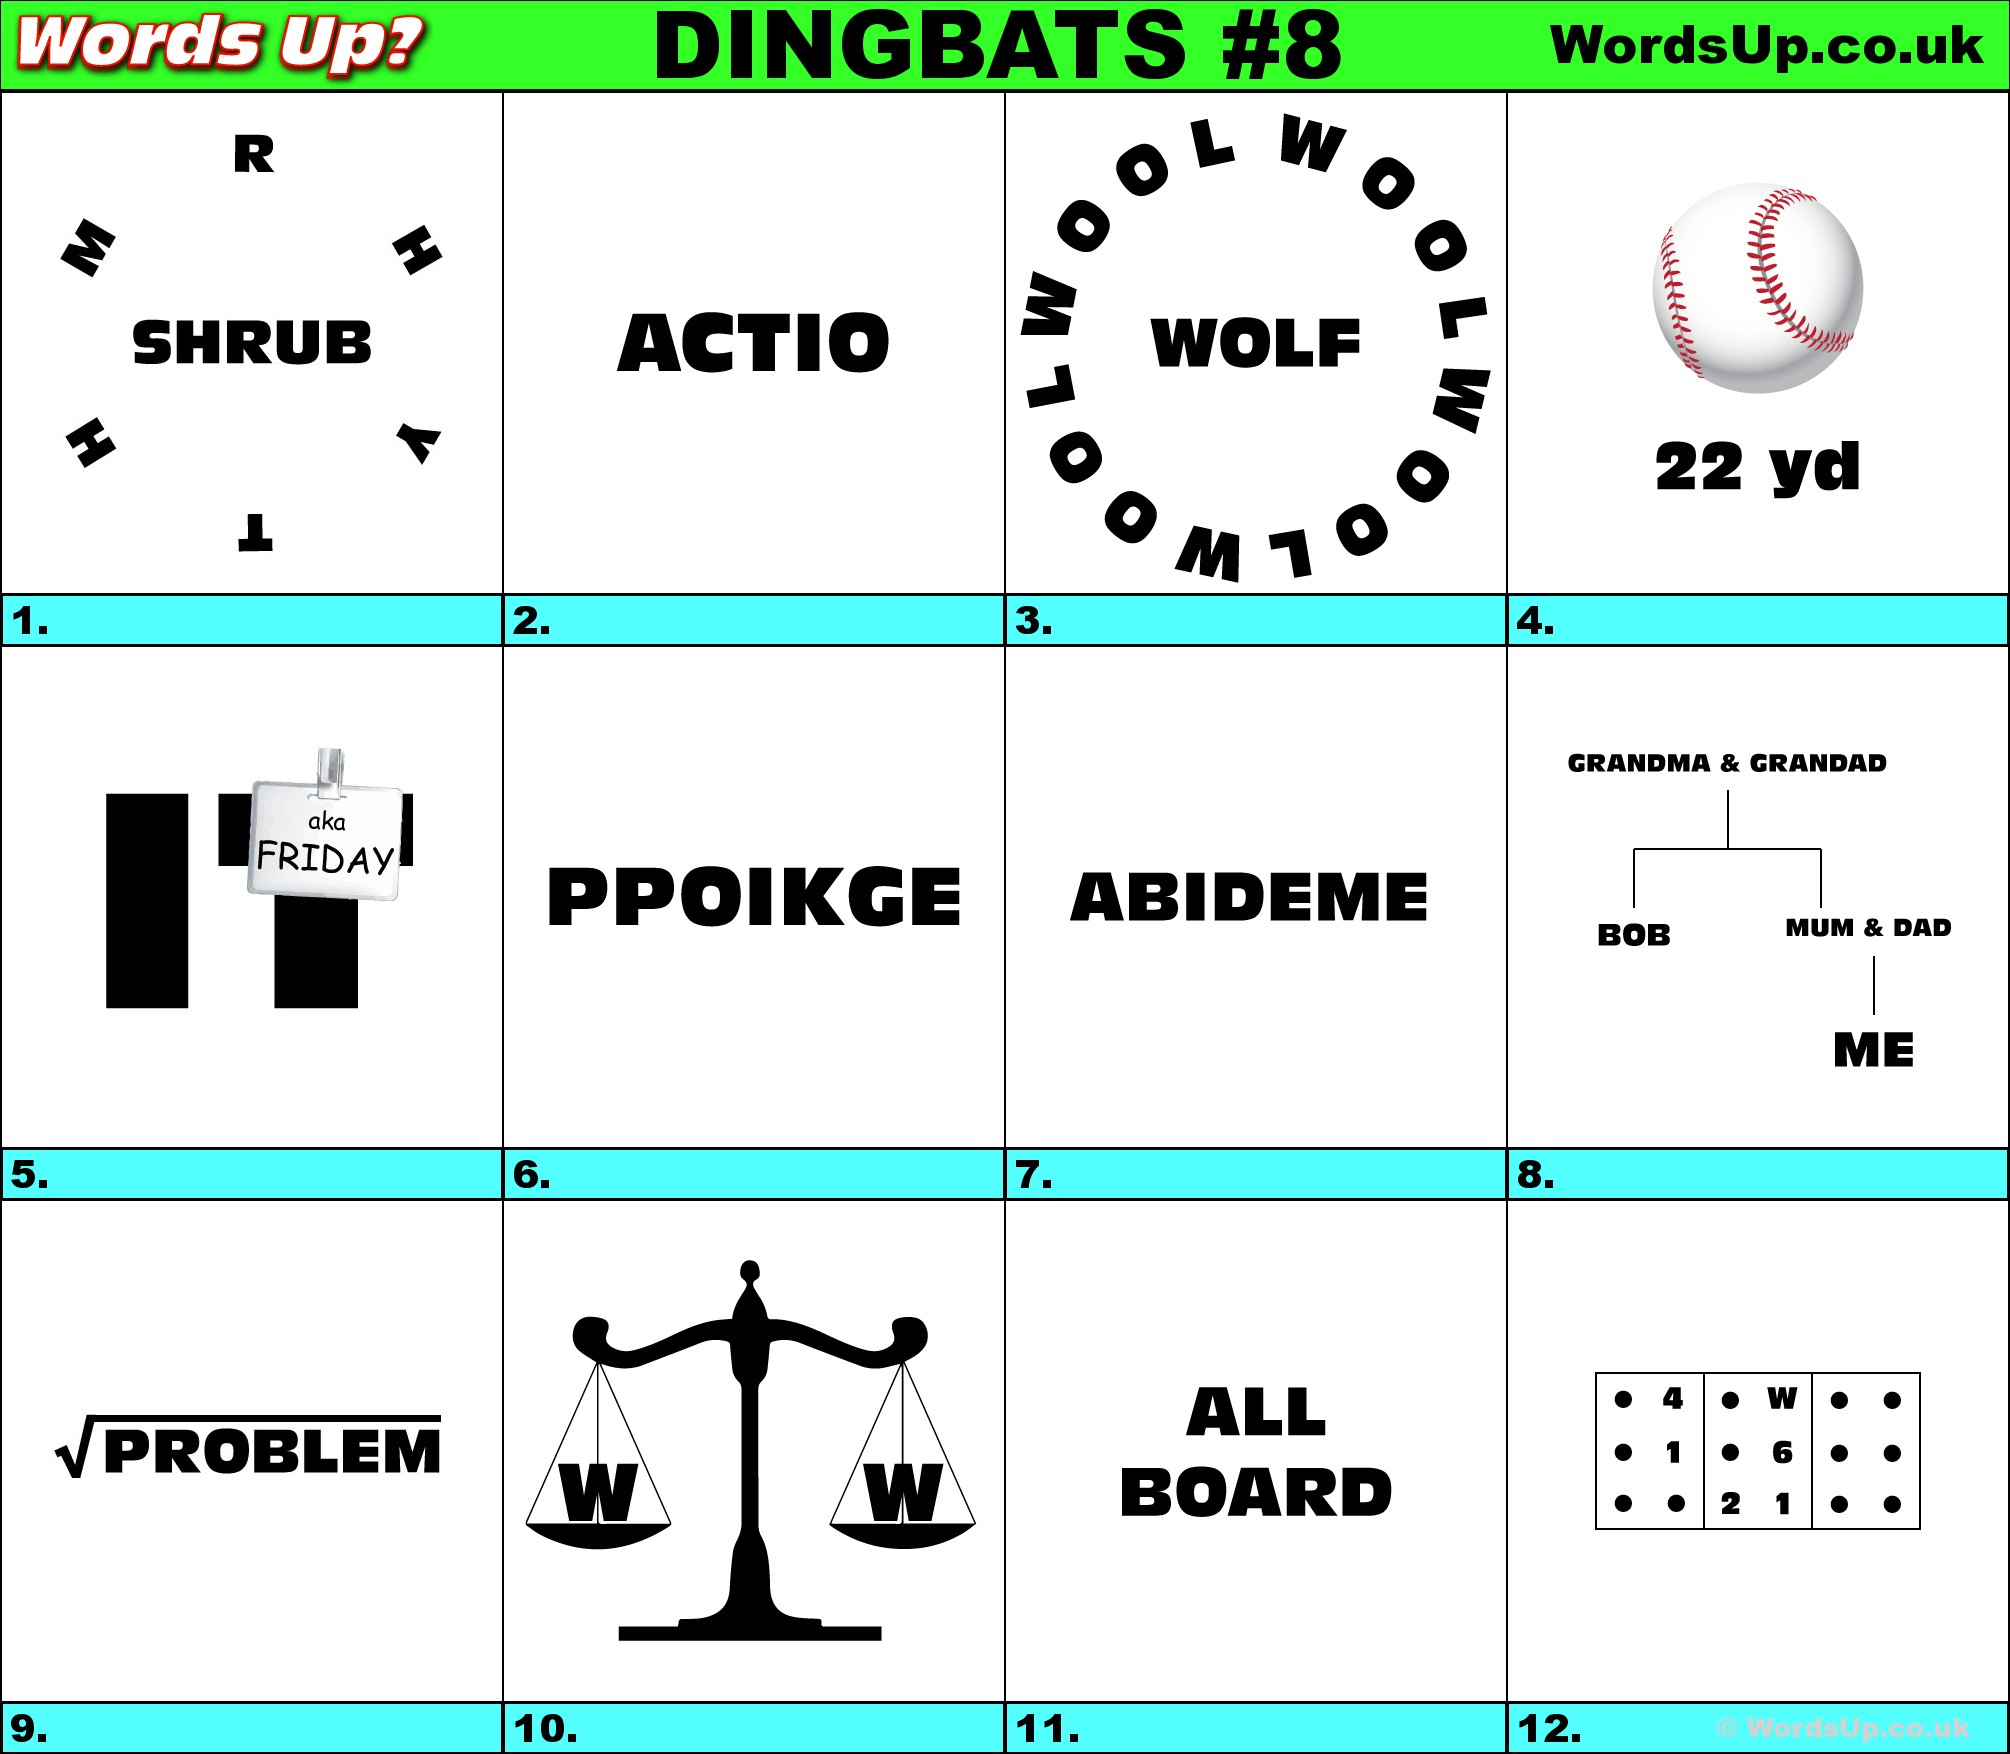 Words Up? Dingbat Puzzles - Free Printable Dingbats Puzzles